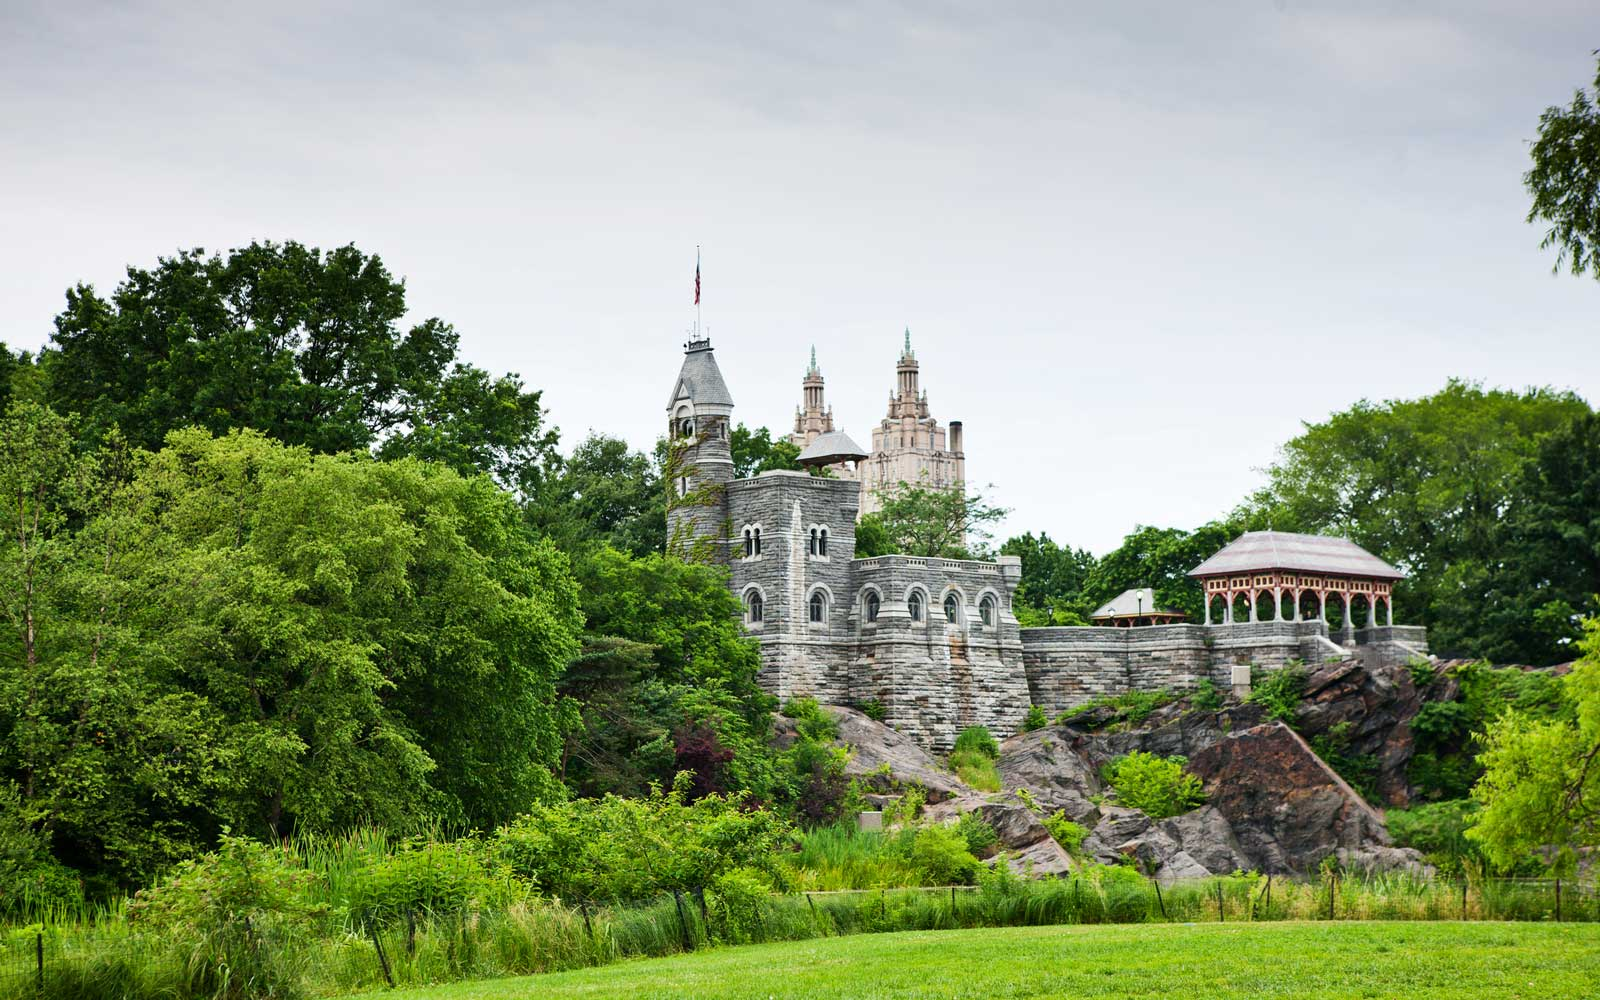 Belvedere Castle, Central Park, New York, USA